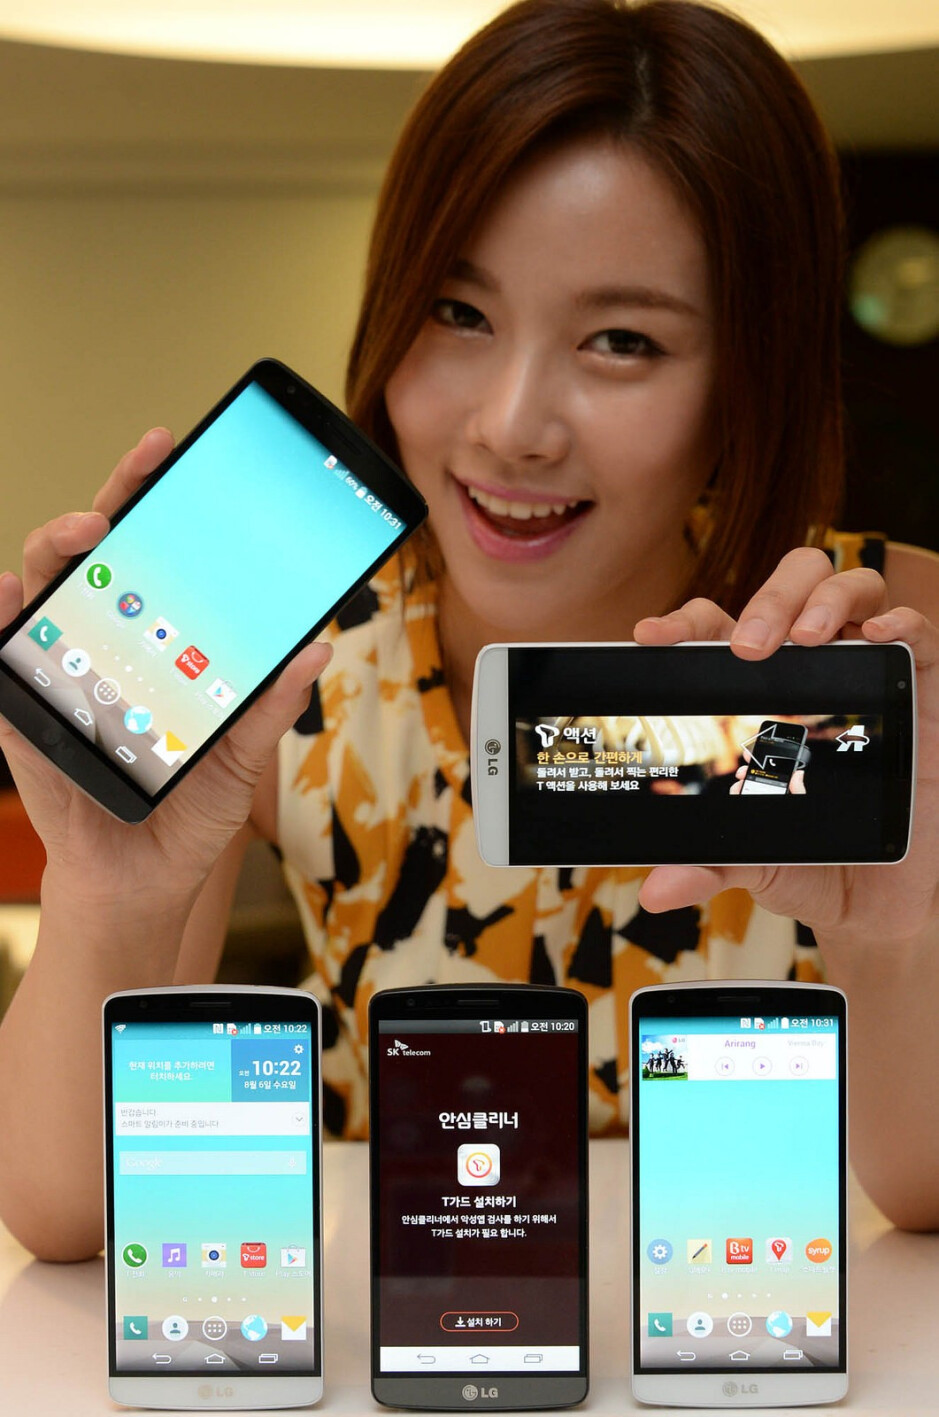 The LG G3 was released in 2014. - Newfound security hole in the LG G3 made user data on it prone to intruders